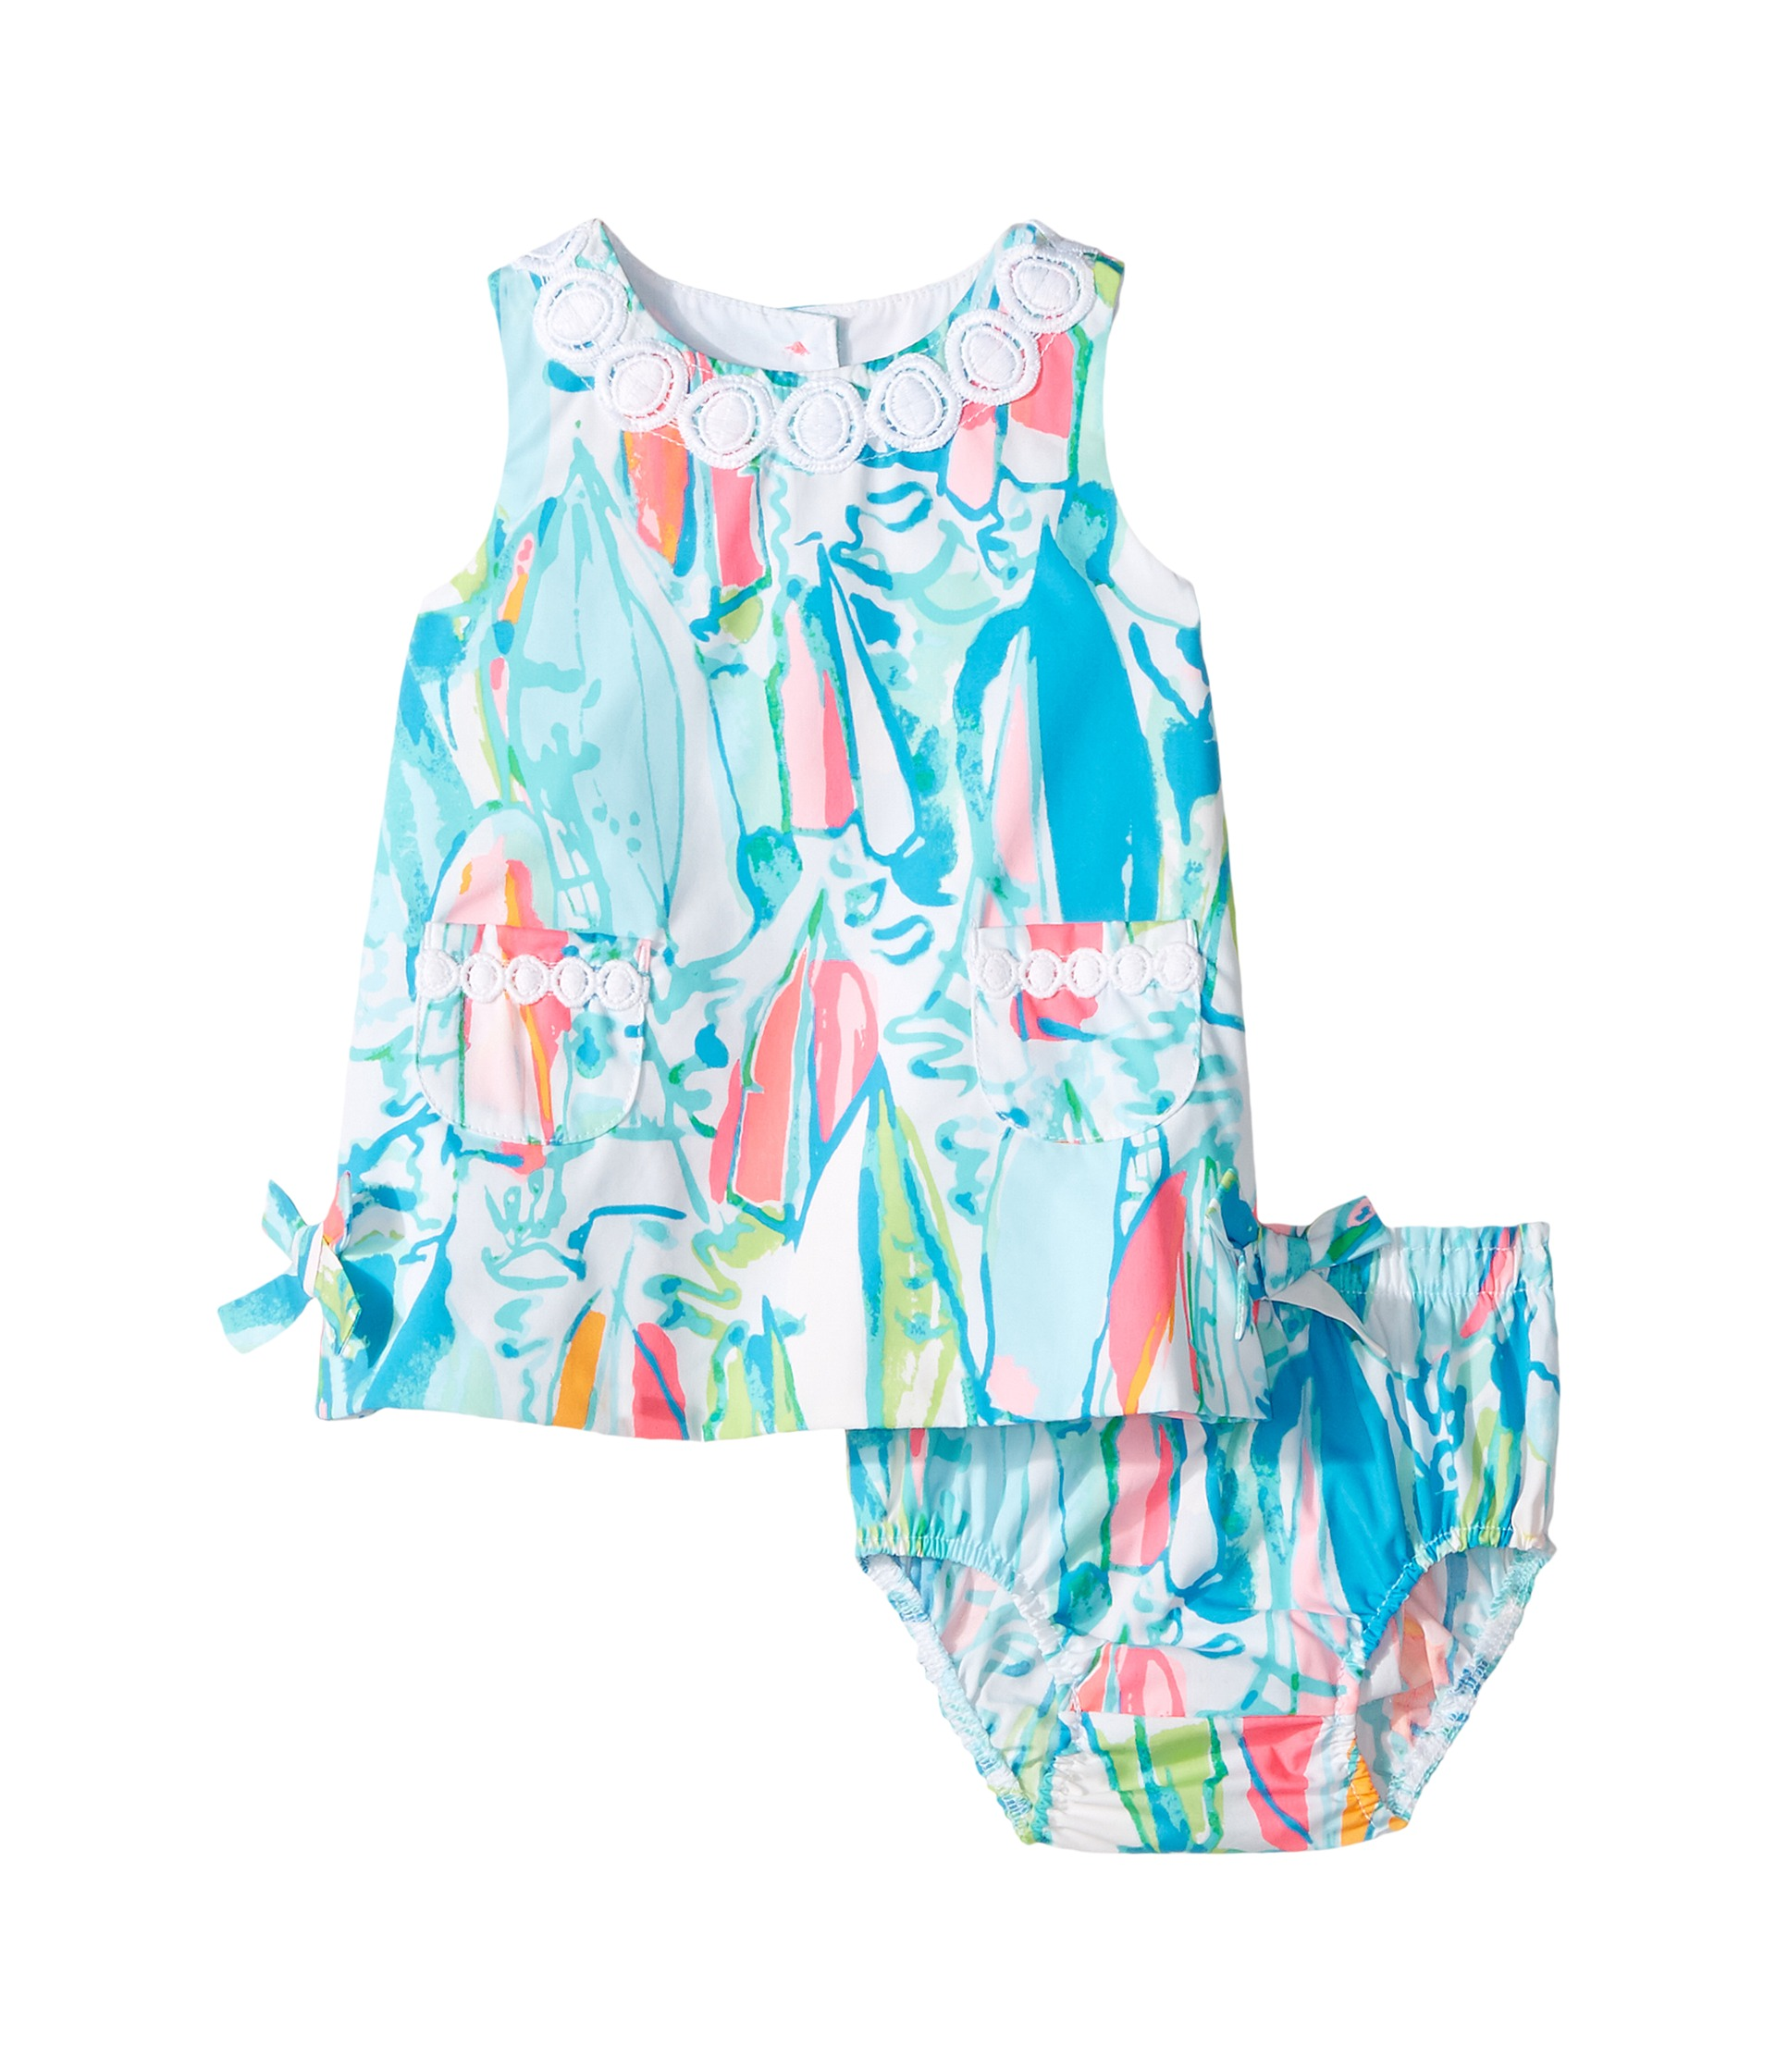 Lilly Pulitzer Kids Baby Lilly Shift Infant at Zappos